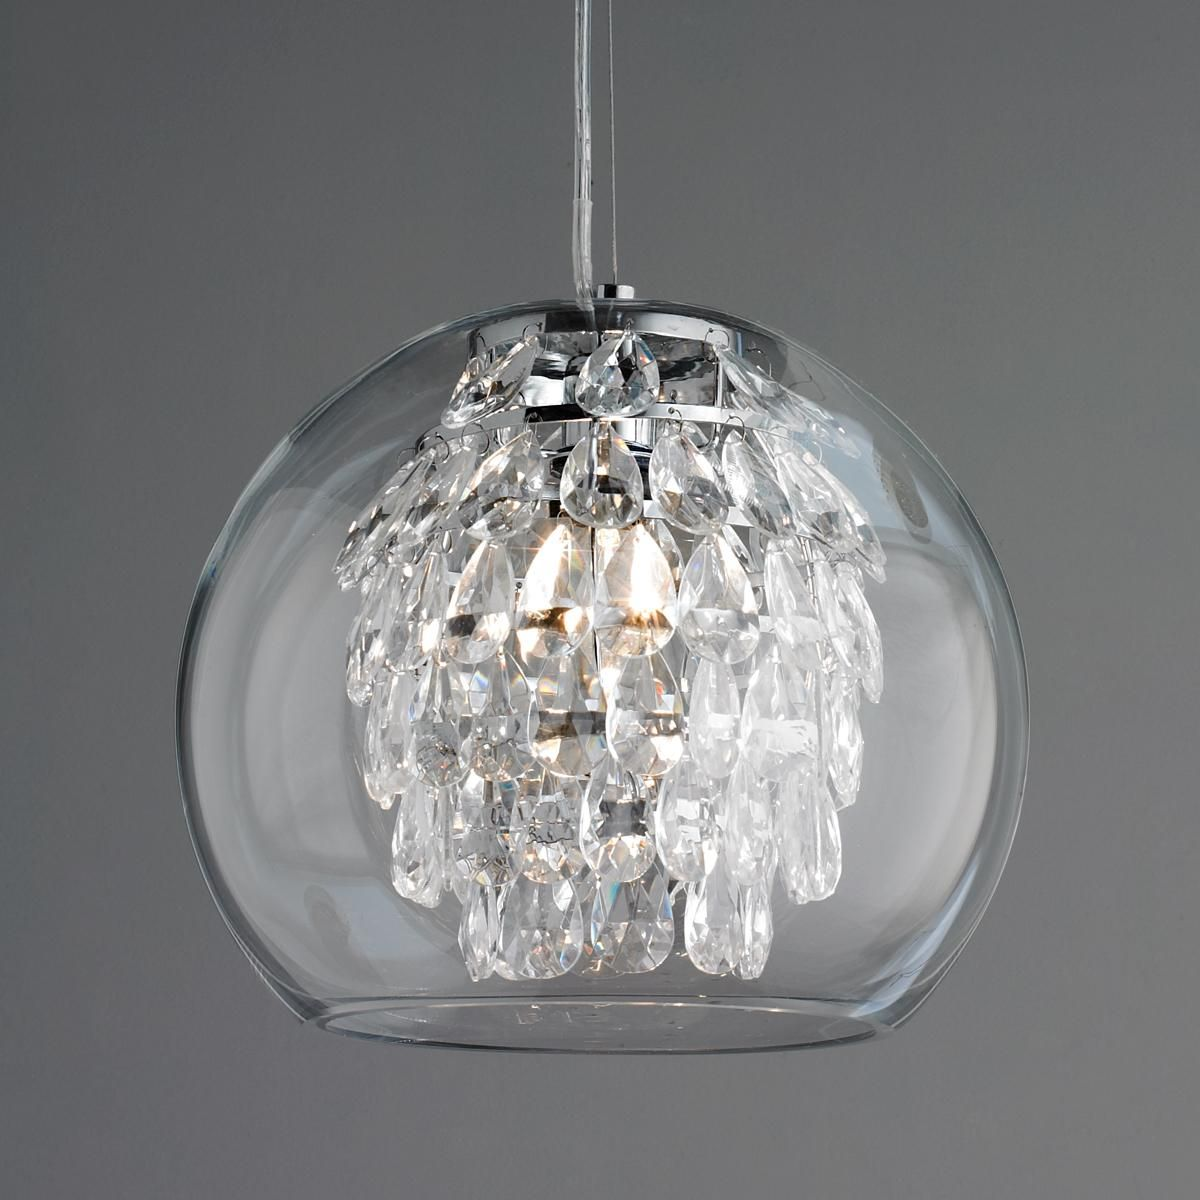 Glass Globe Crystal Pendant Light Elegant And Sophisticated With A Modern Look For Today S